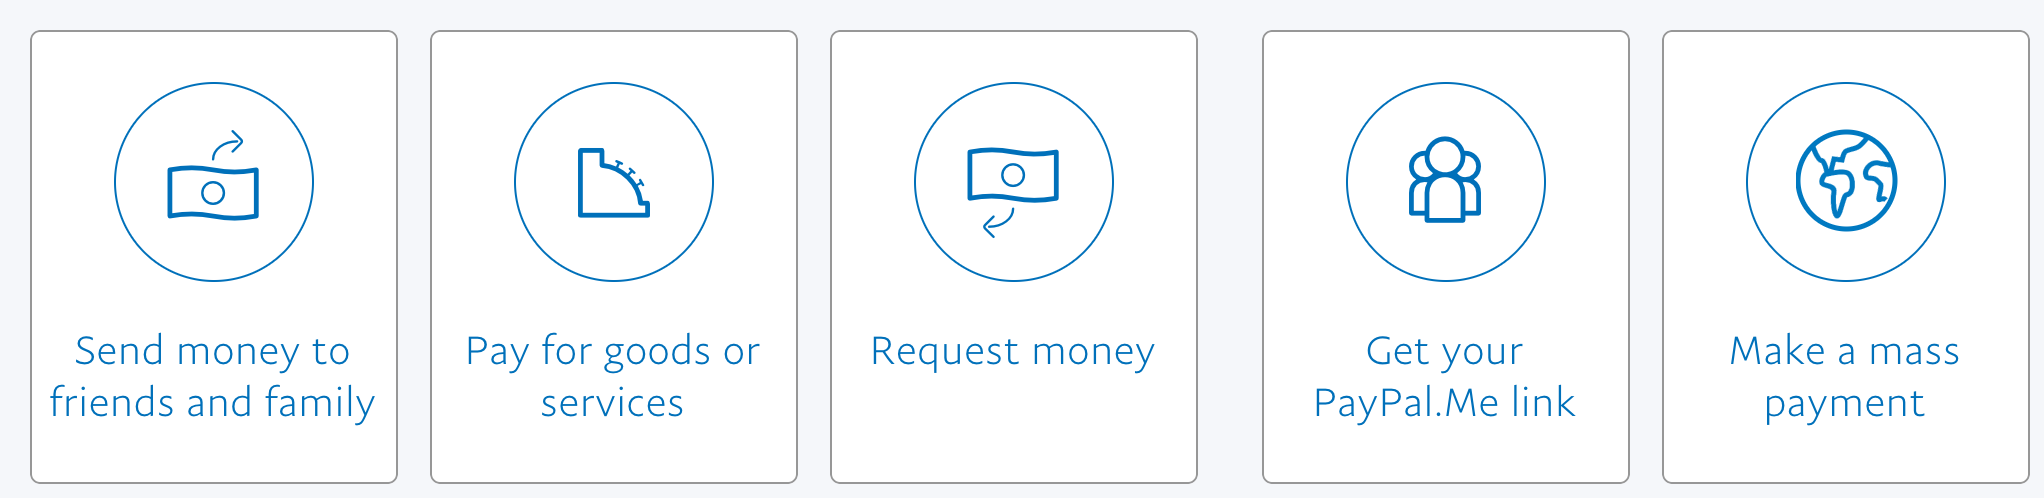 ways you can send or request money, paypal